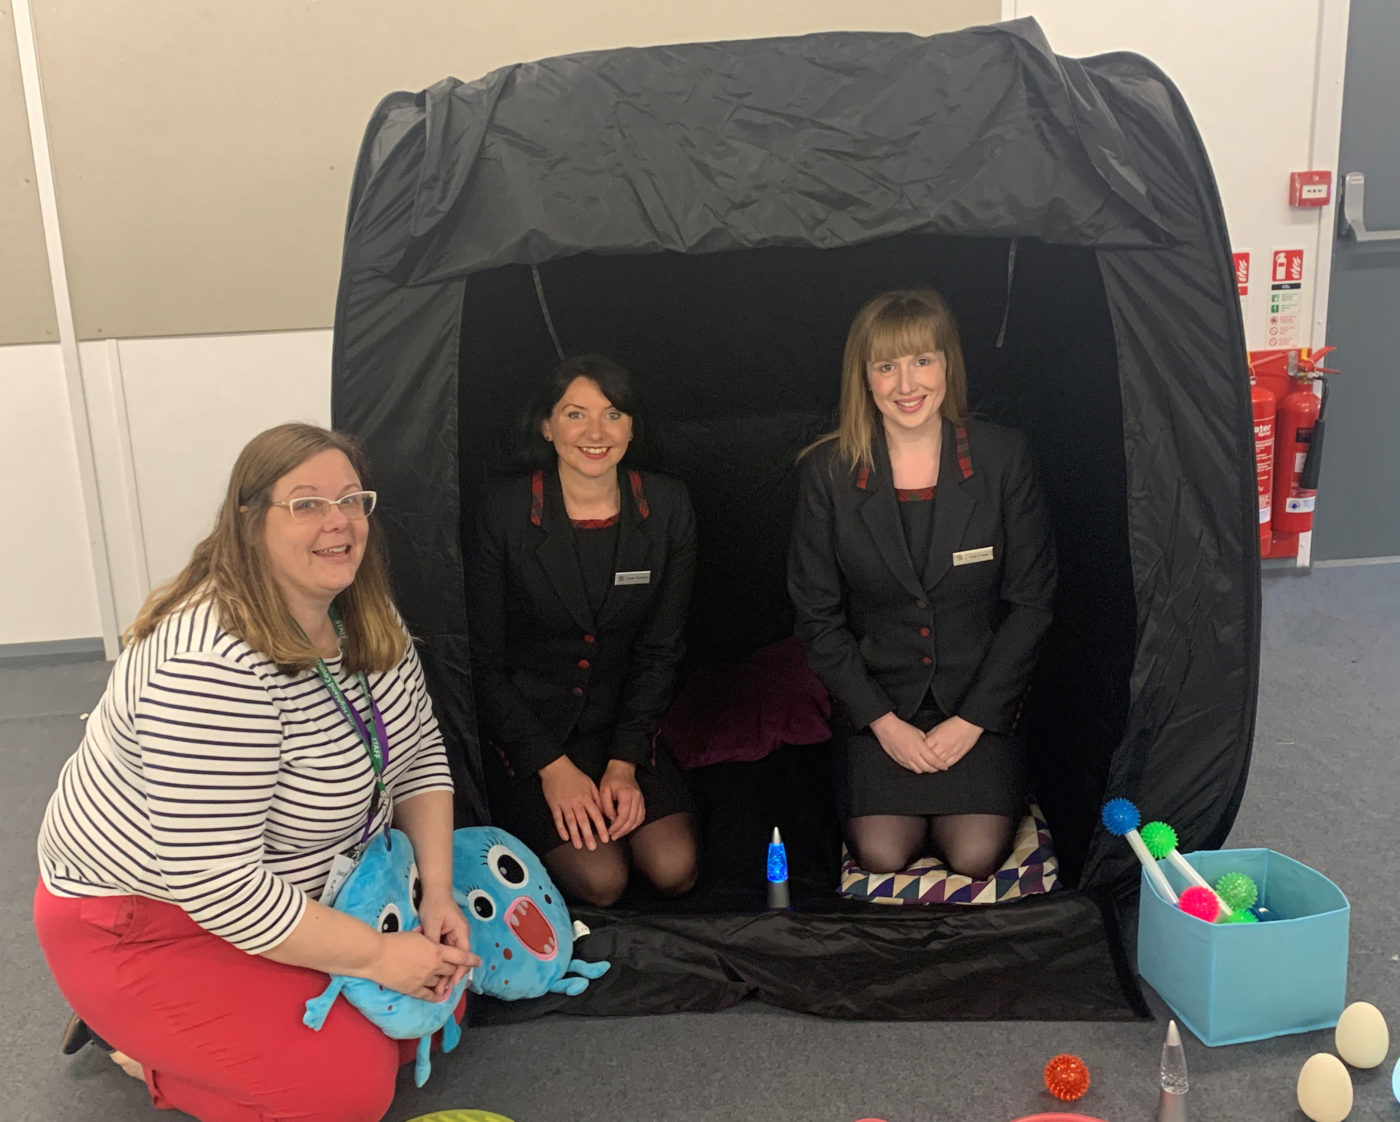 Allison Howie, Principal Teacher of Additional Support Needs, with Sarah and Vicki in one of the school's new sensory tents